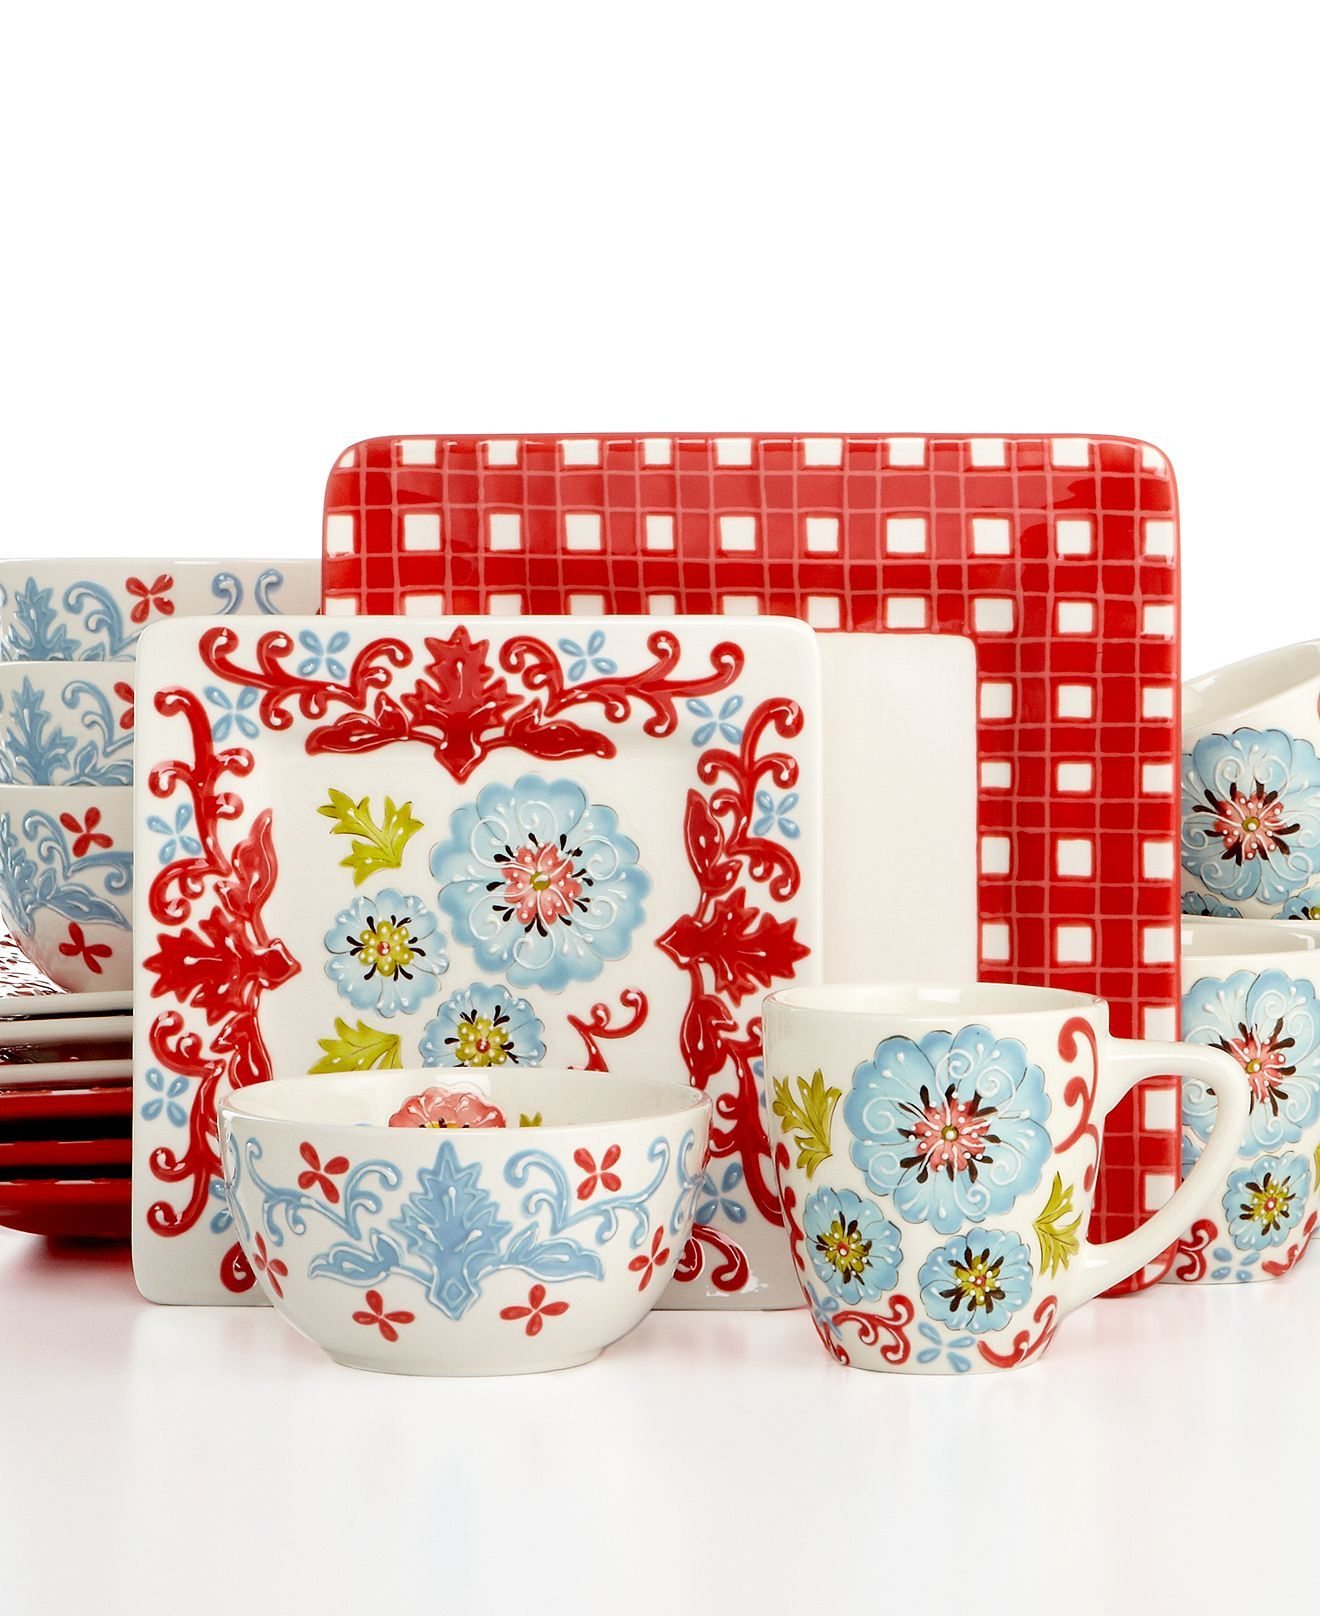 Laurie Gates Dinnerware Dixie Belle Collection  sc 1 st  Pinterest & Laurie Gates Dinnerware Dixie Belle Collection | Dinnerware/Dish ...